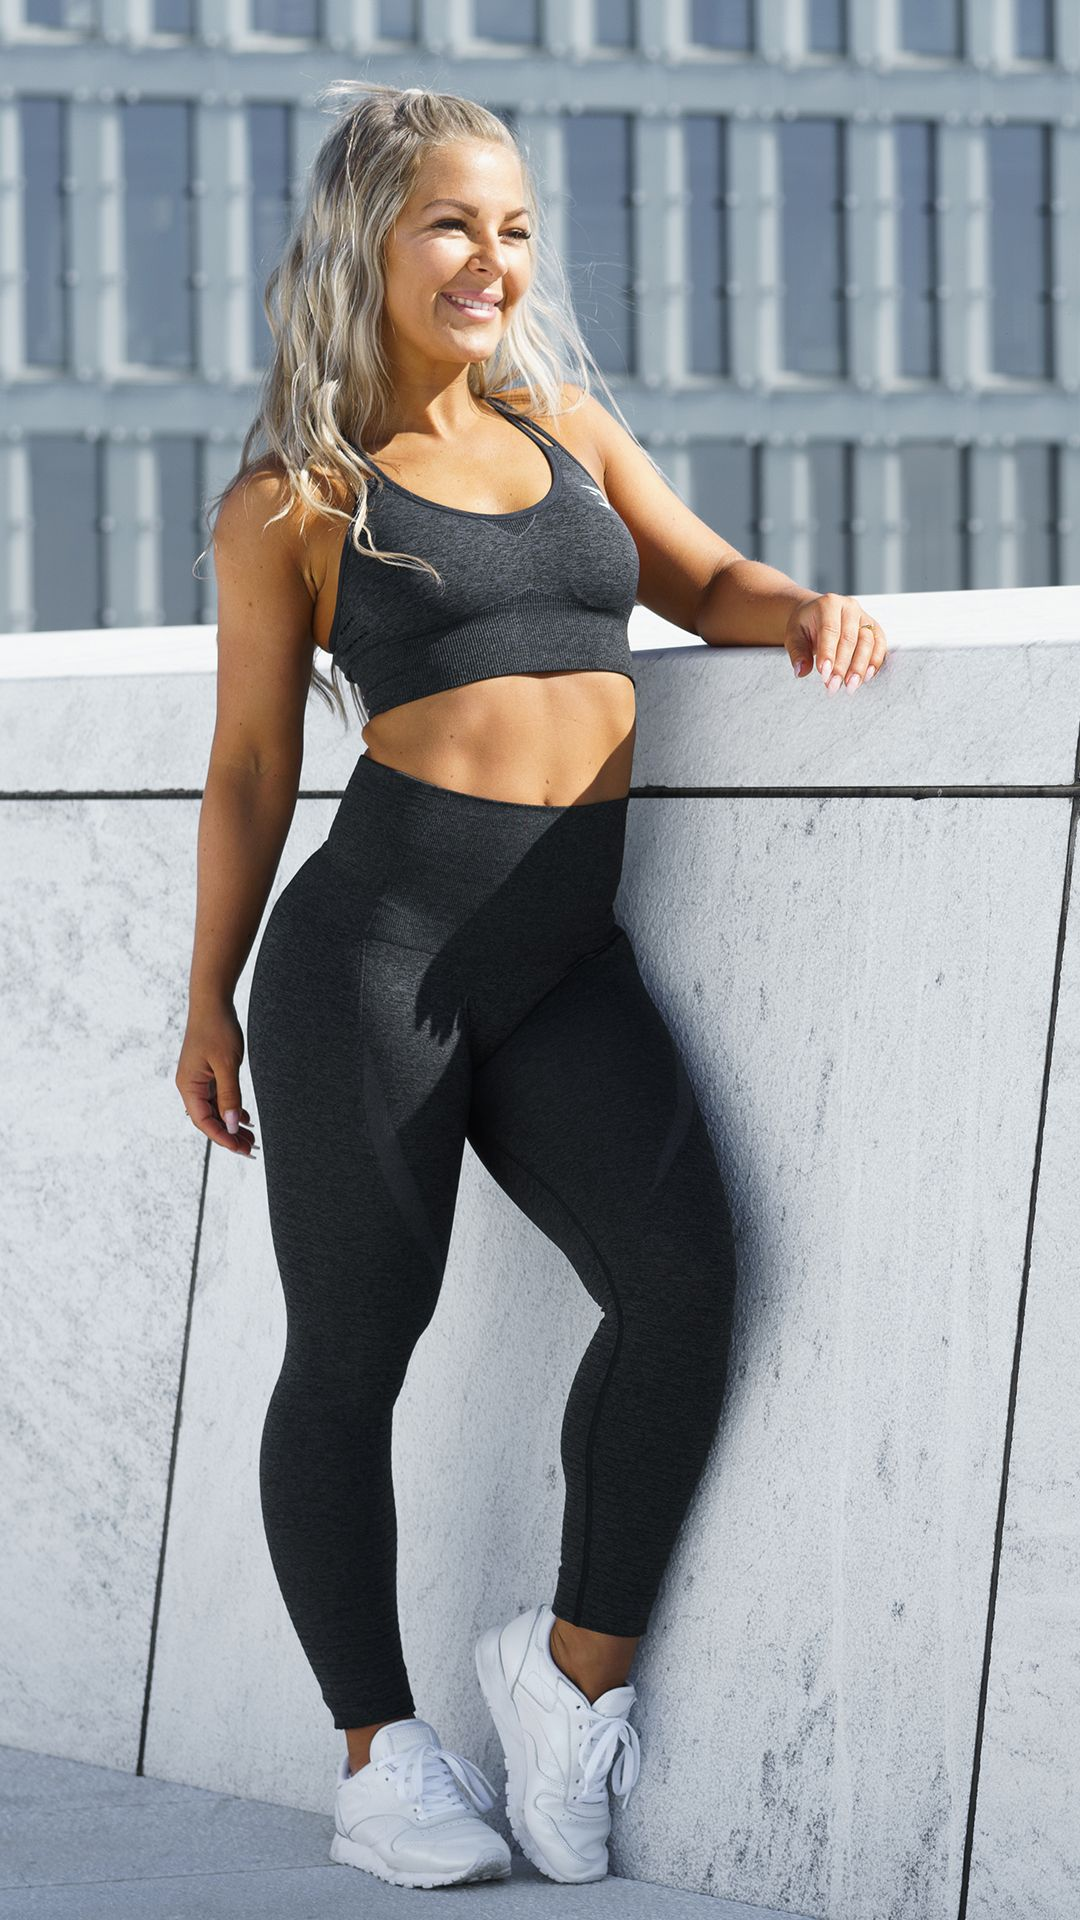 1b9cc92977ac6 The perfect match. Linn Jacobsson in that all black Seamless set ...